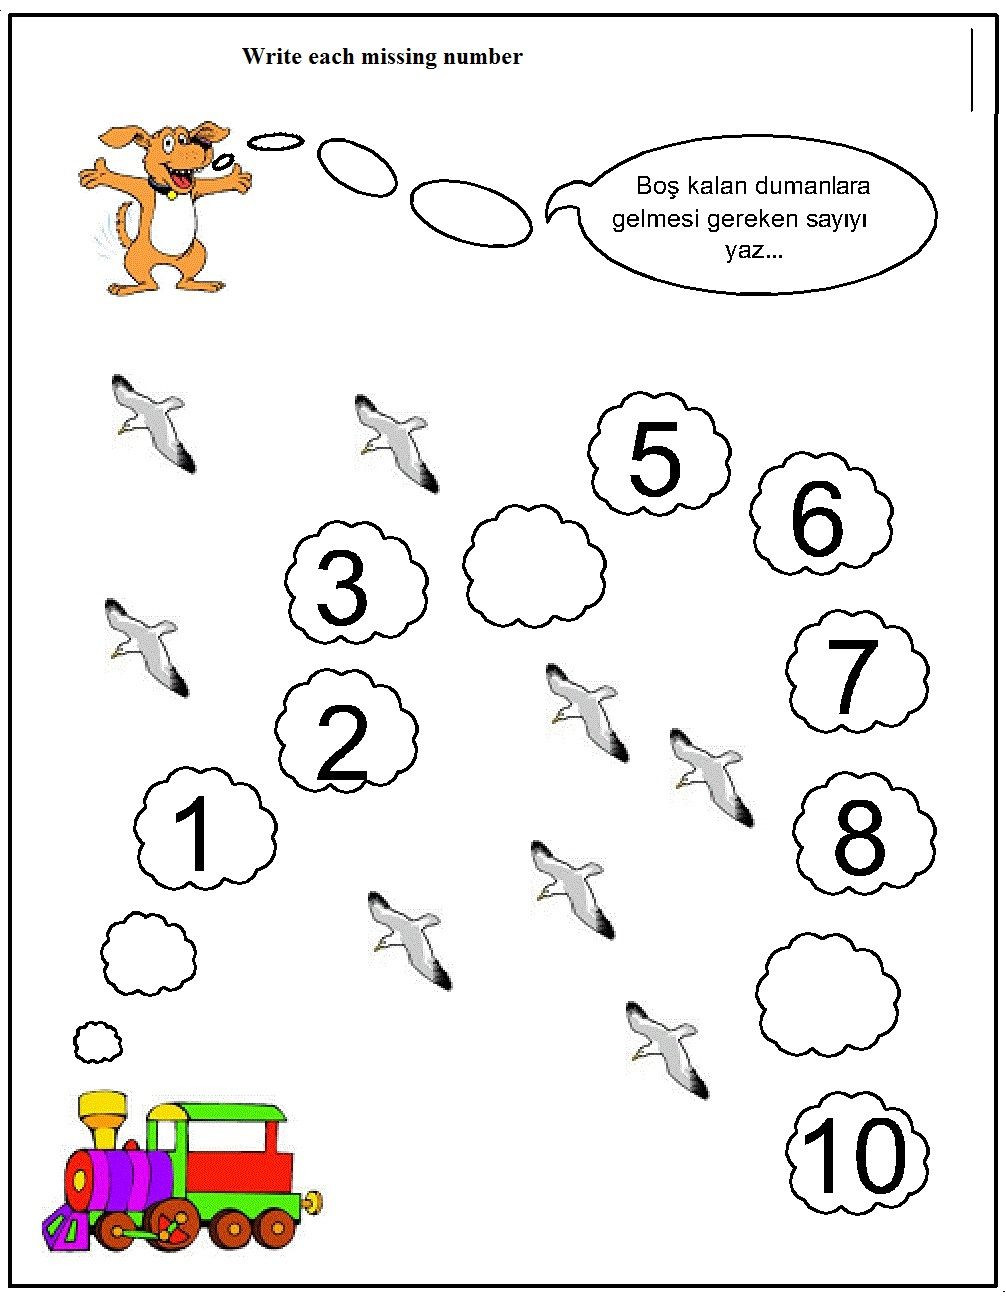 Missing Number Worksheets Kindergarten Missing Number Worksheet for Kids 14